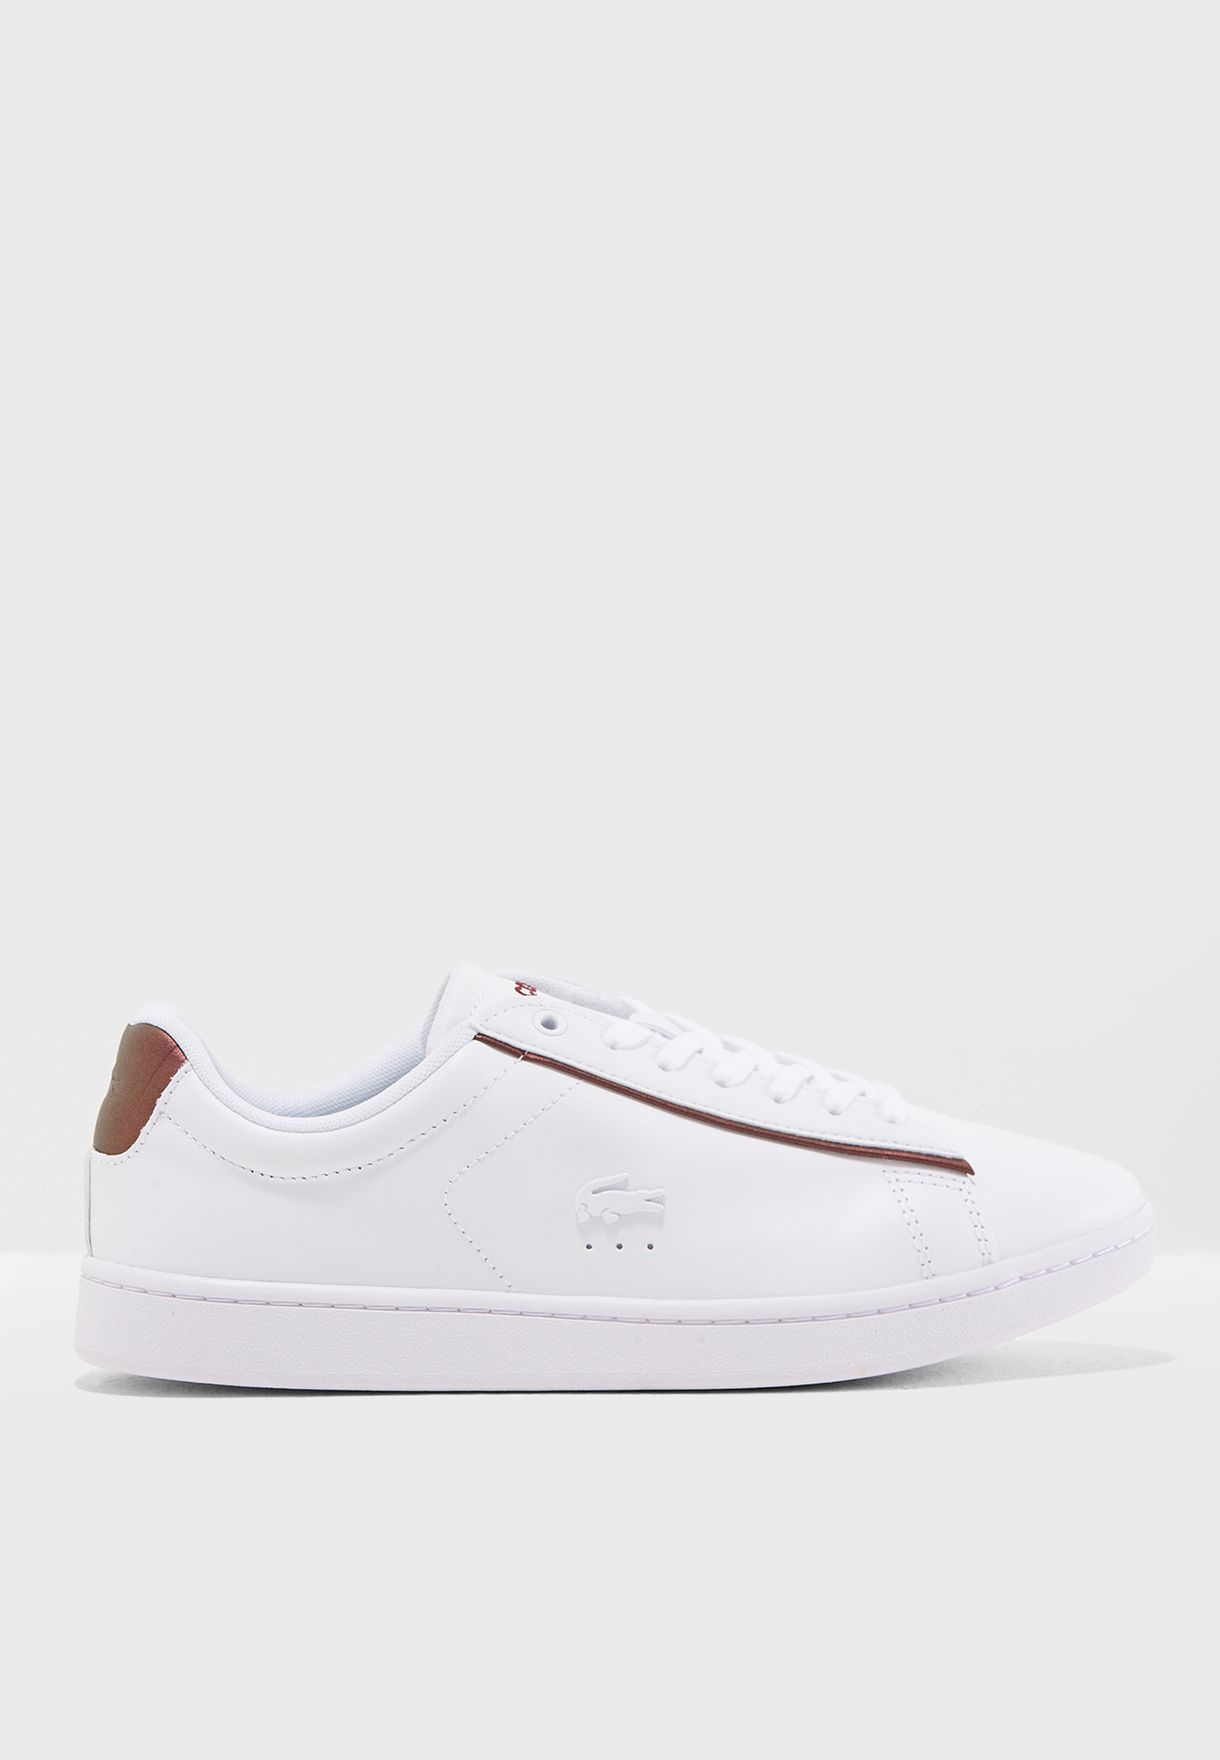 97caae1b2a1408 Shop Lacoste white Carnaby Evo 318 7 Spw Sneaker 736SPW0042 for ...